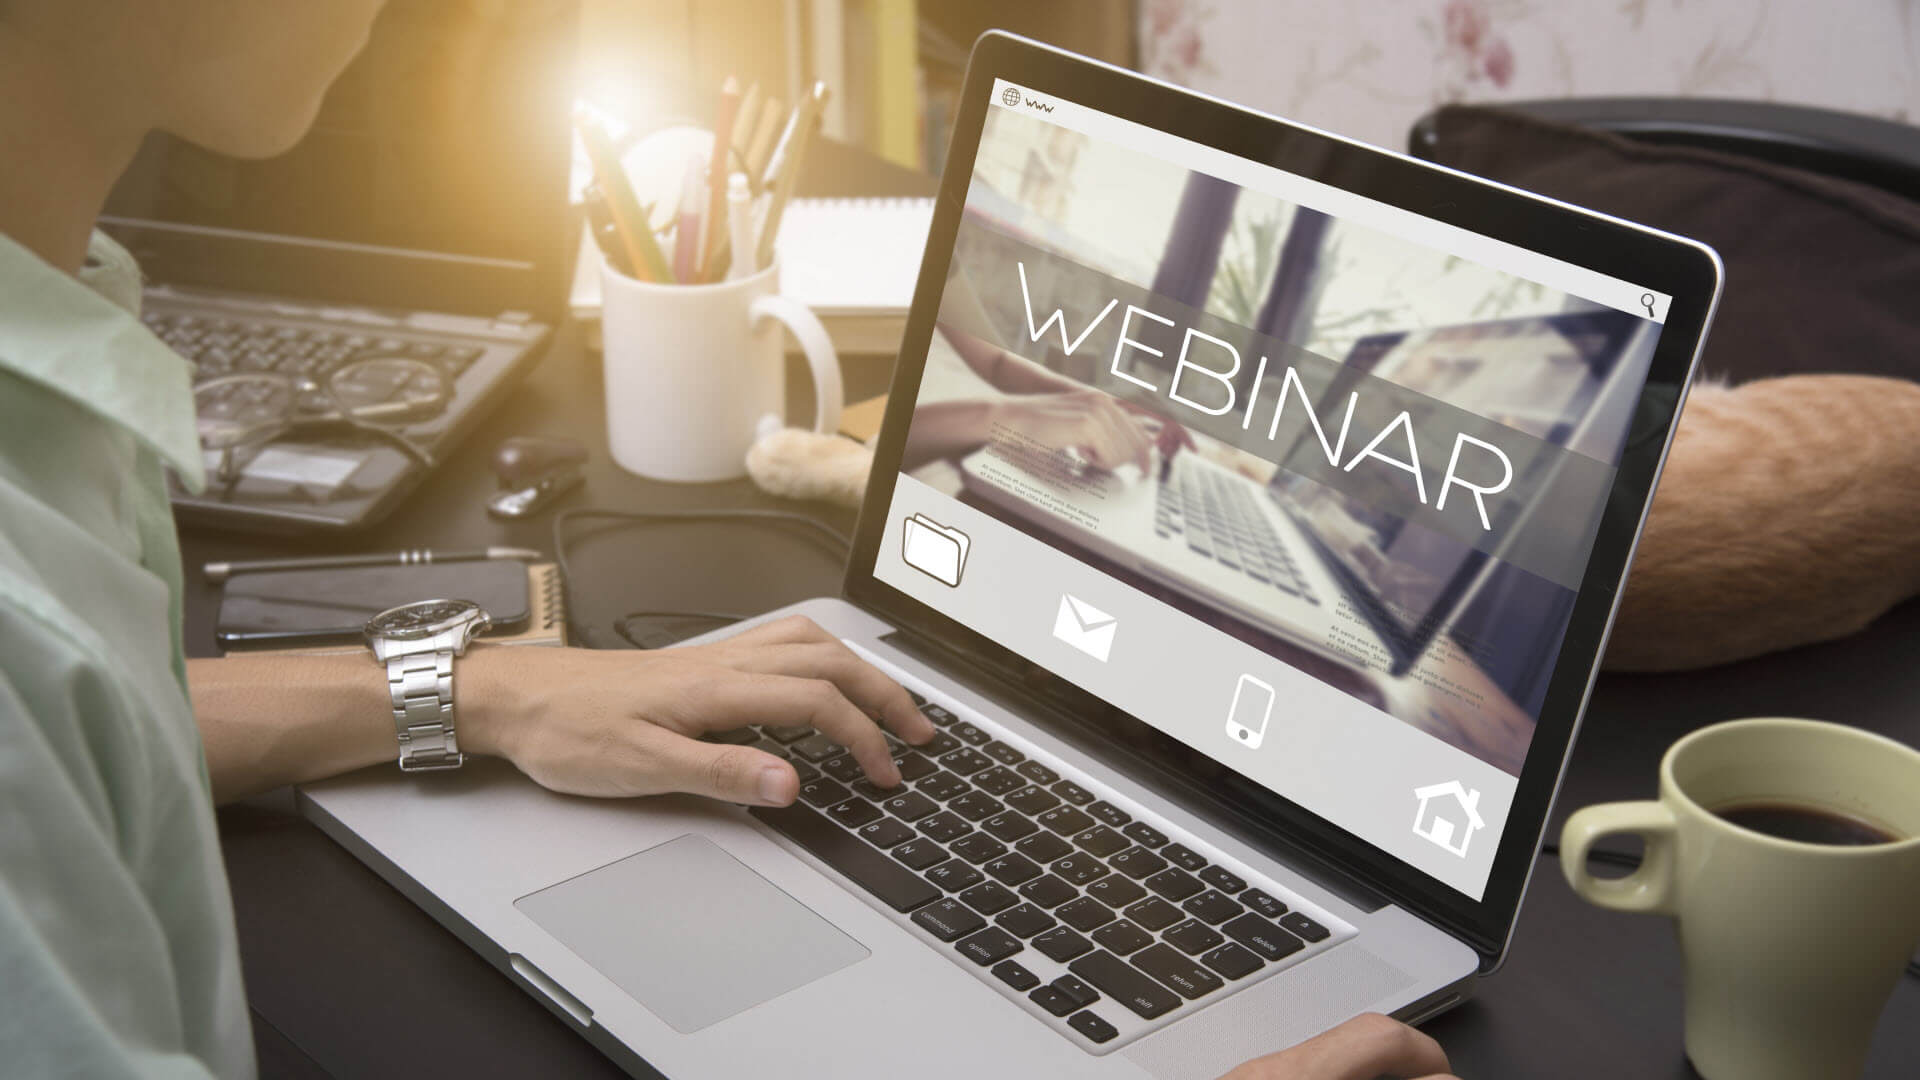 Webinar: Reinventing Independent Practice: New Strategies to Establish a Practice and Thrive While Maintaining Your Autonomy